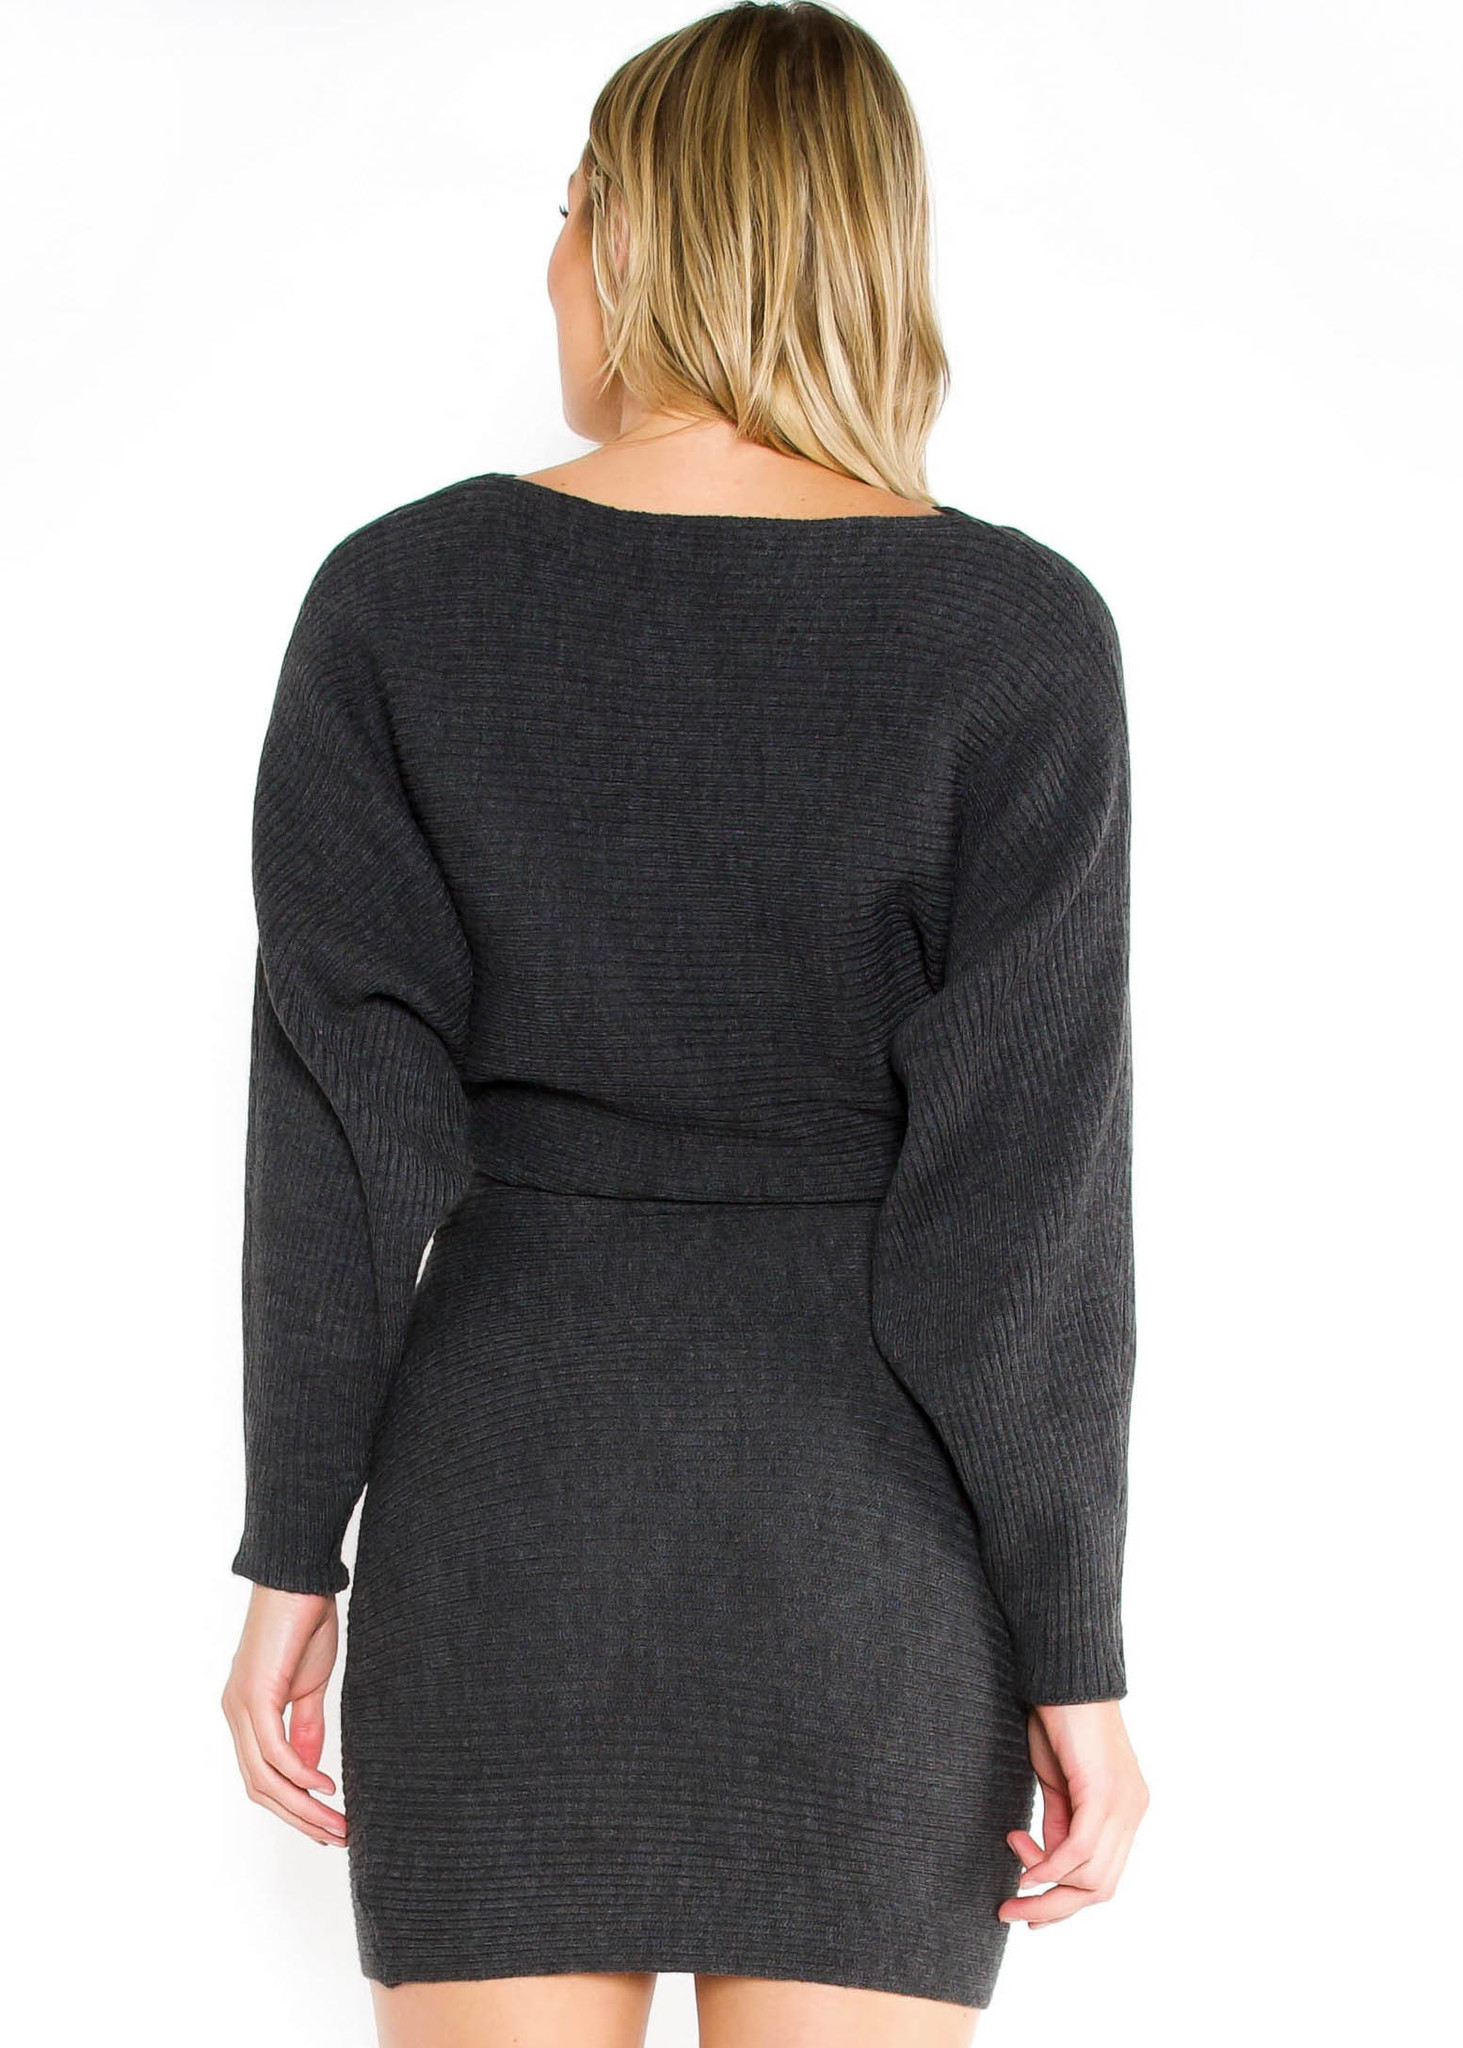 BY THE WAY SWEATER DRESS